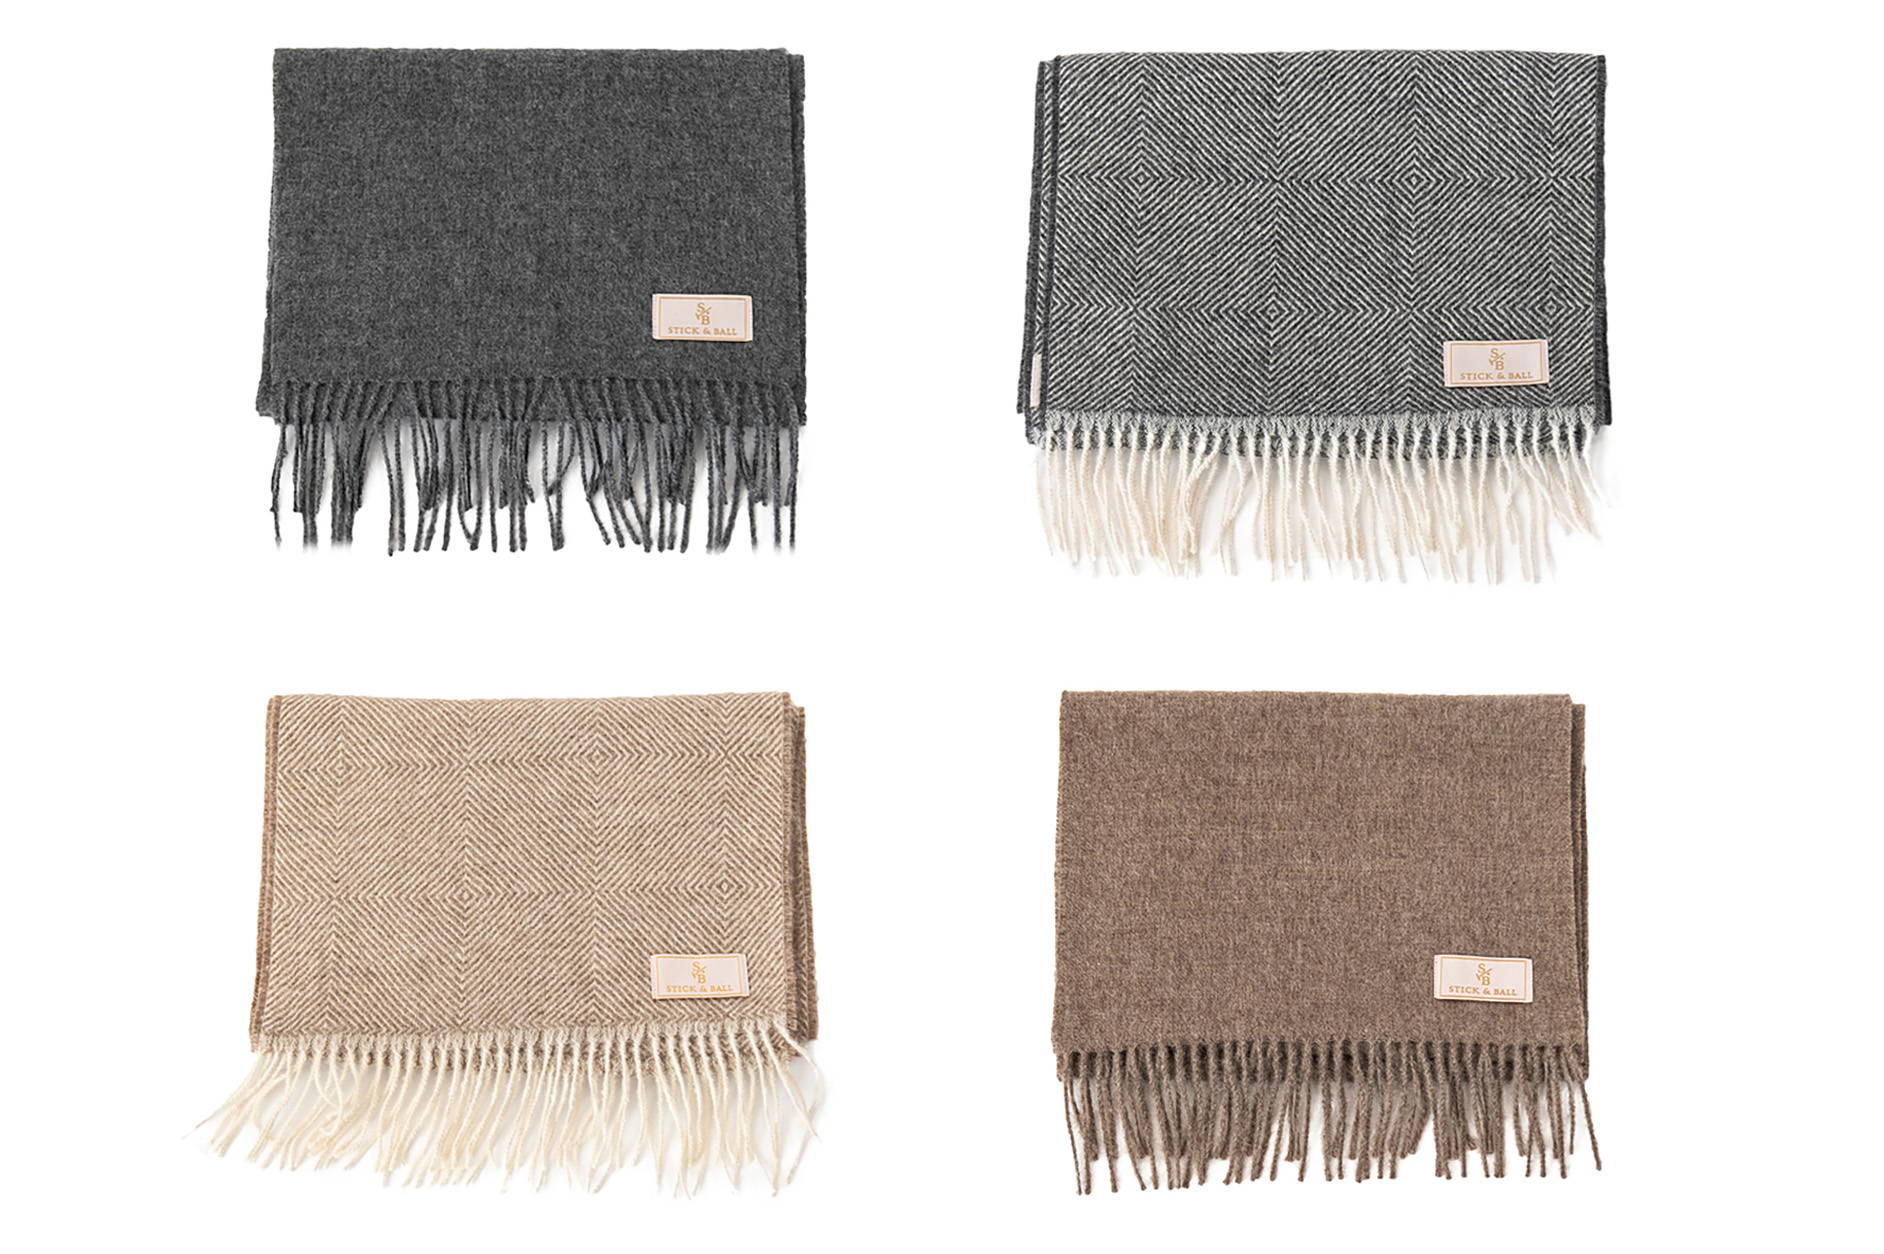 Display of Alpaca Scarves in solid charcoal and taupe colors & with diamond motif pattern - Stick & Ball